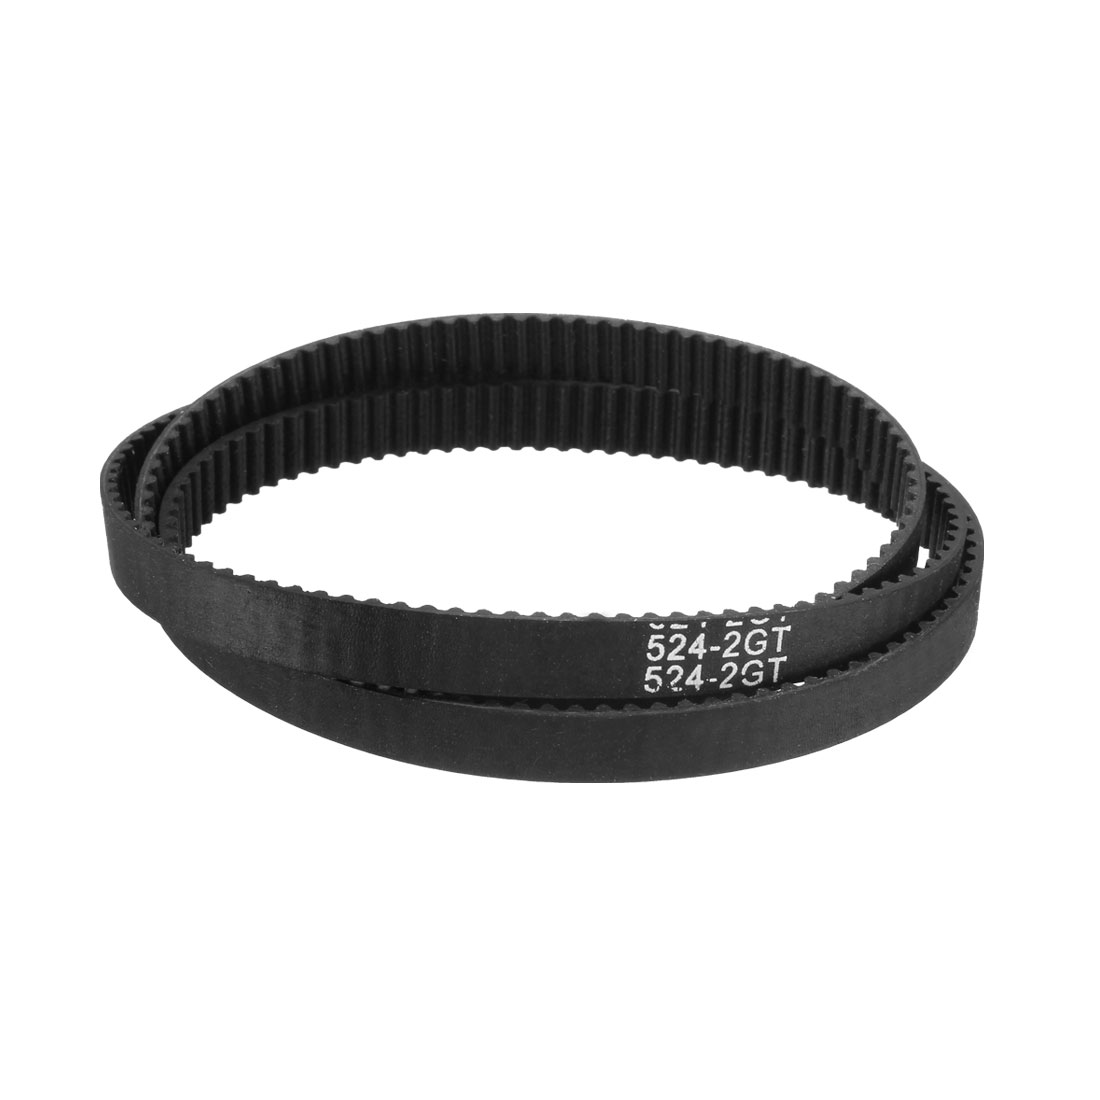 GT2 Timing Belt 524mm Closed Fit Synchronous Wheel for 3D Printer